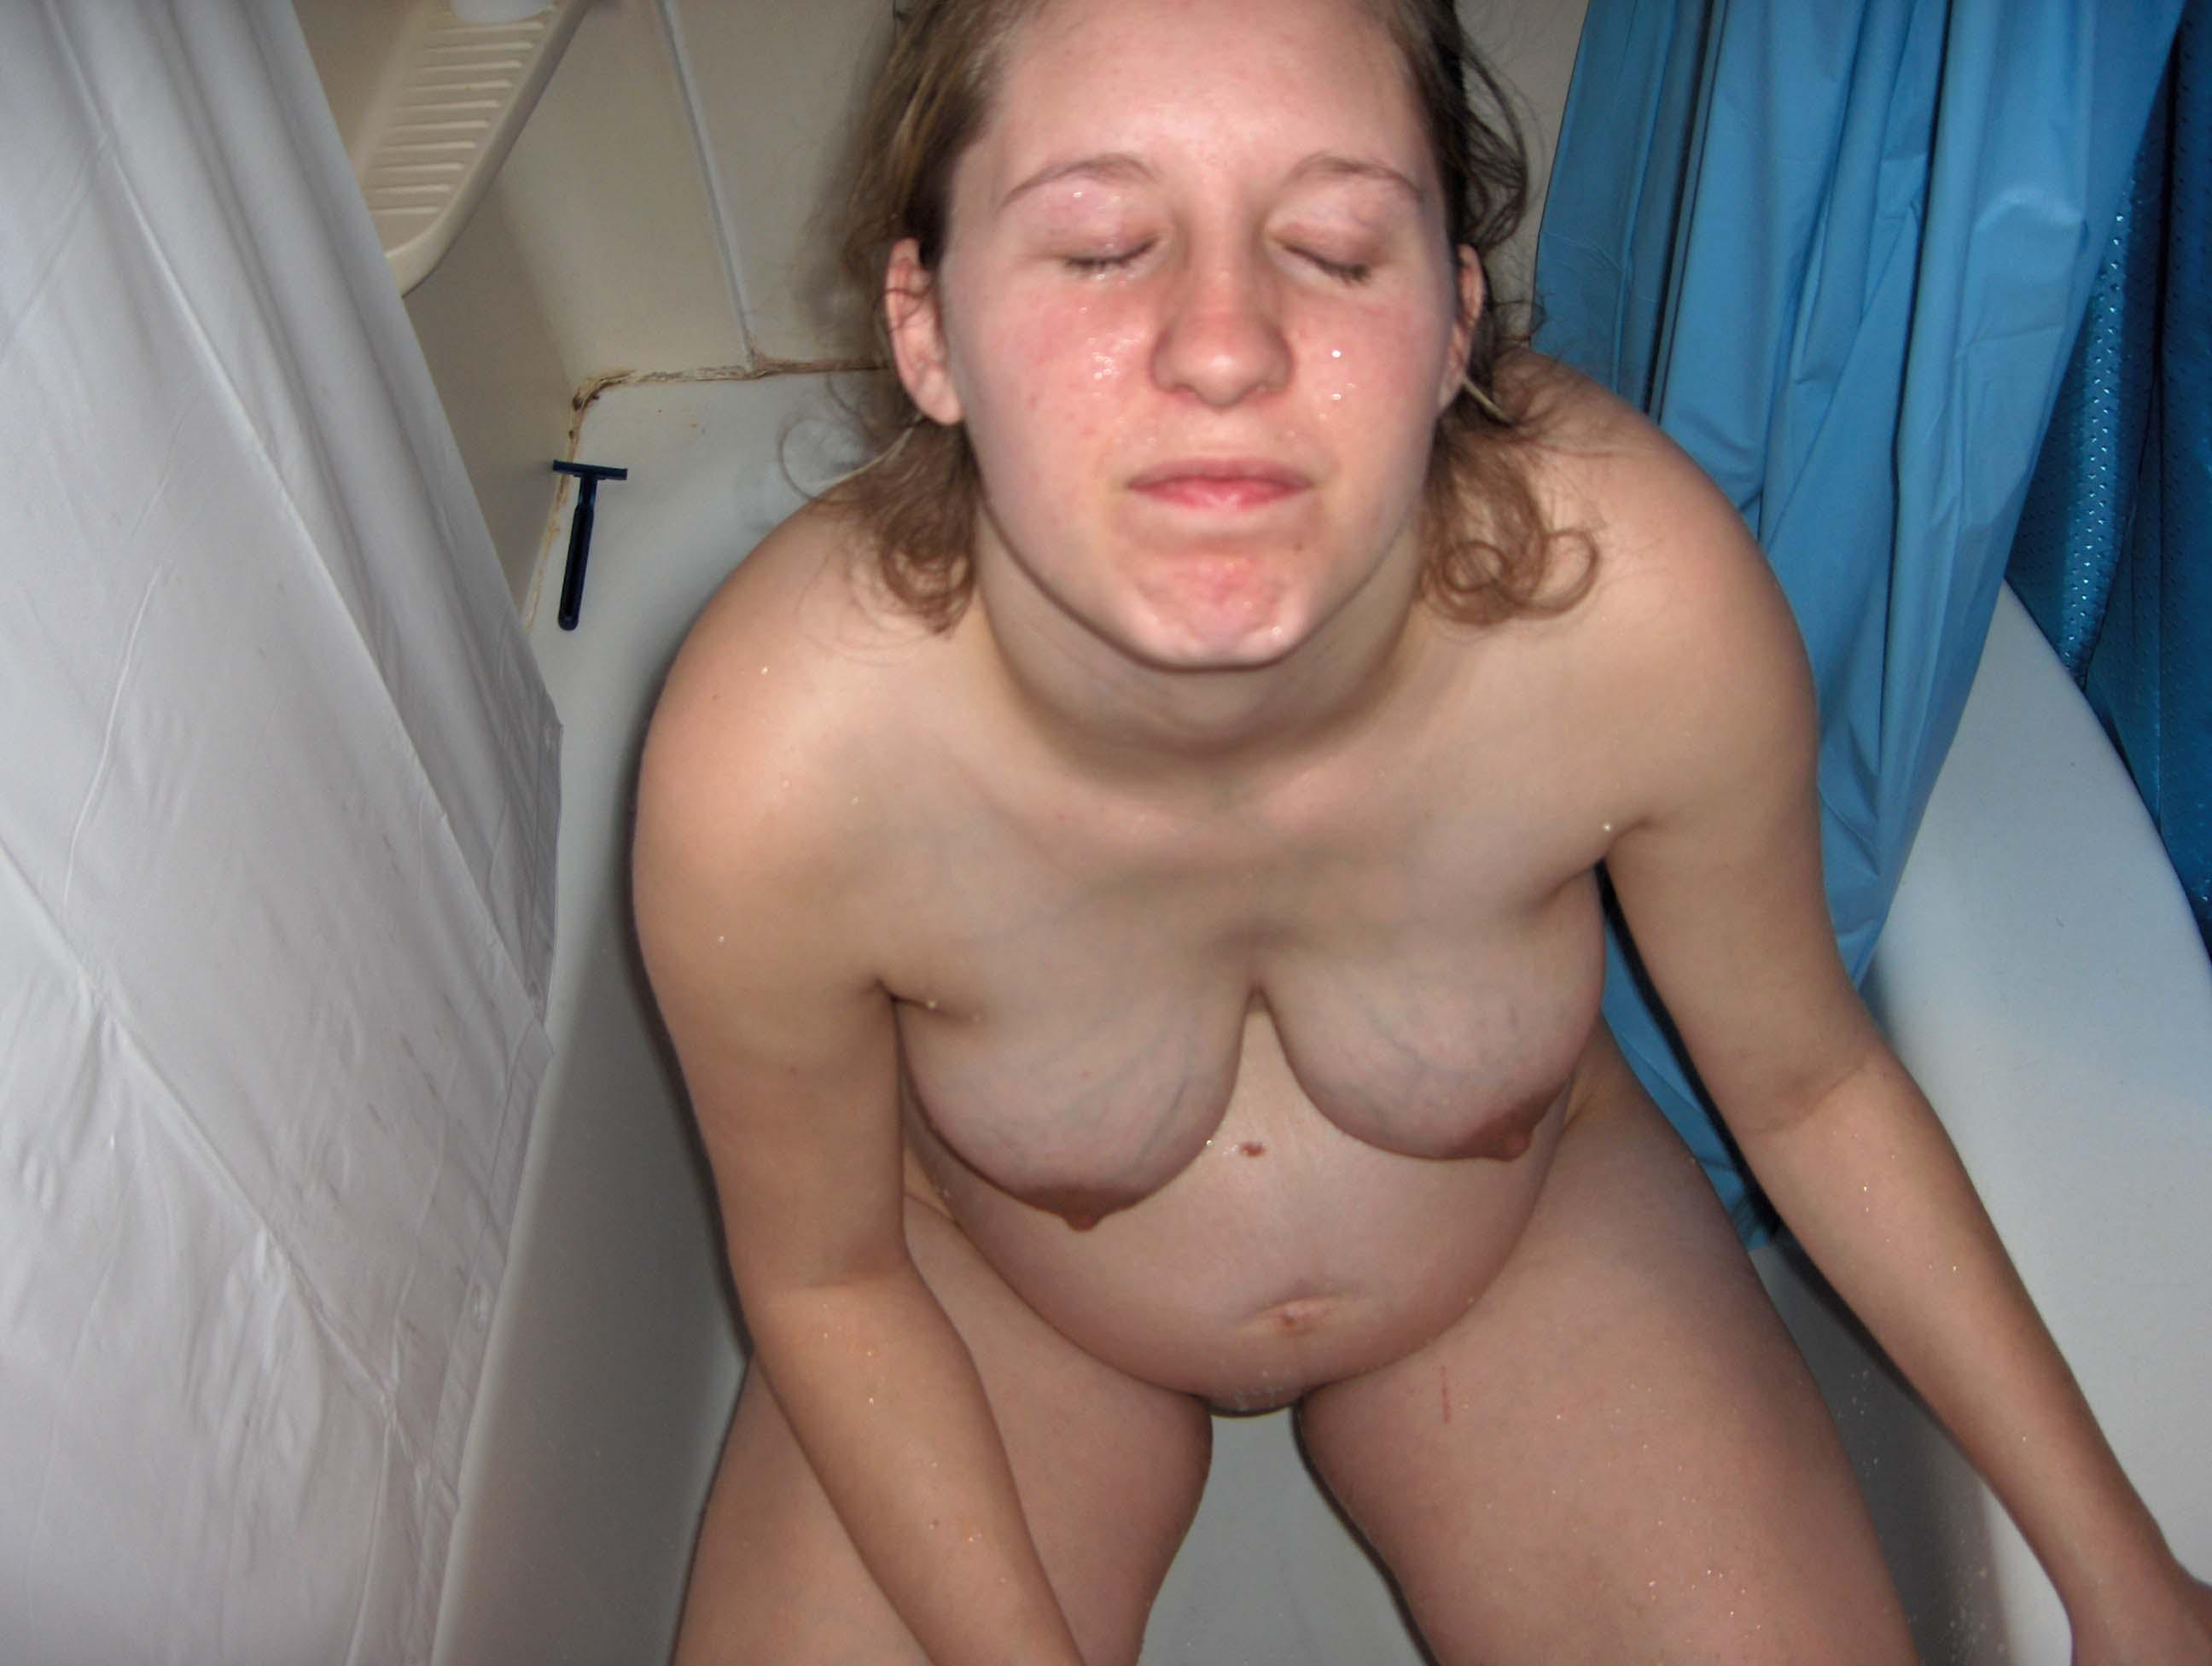 MOST FUCKED NAKED LADIES VIRGINA OPEN